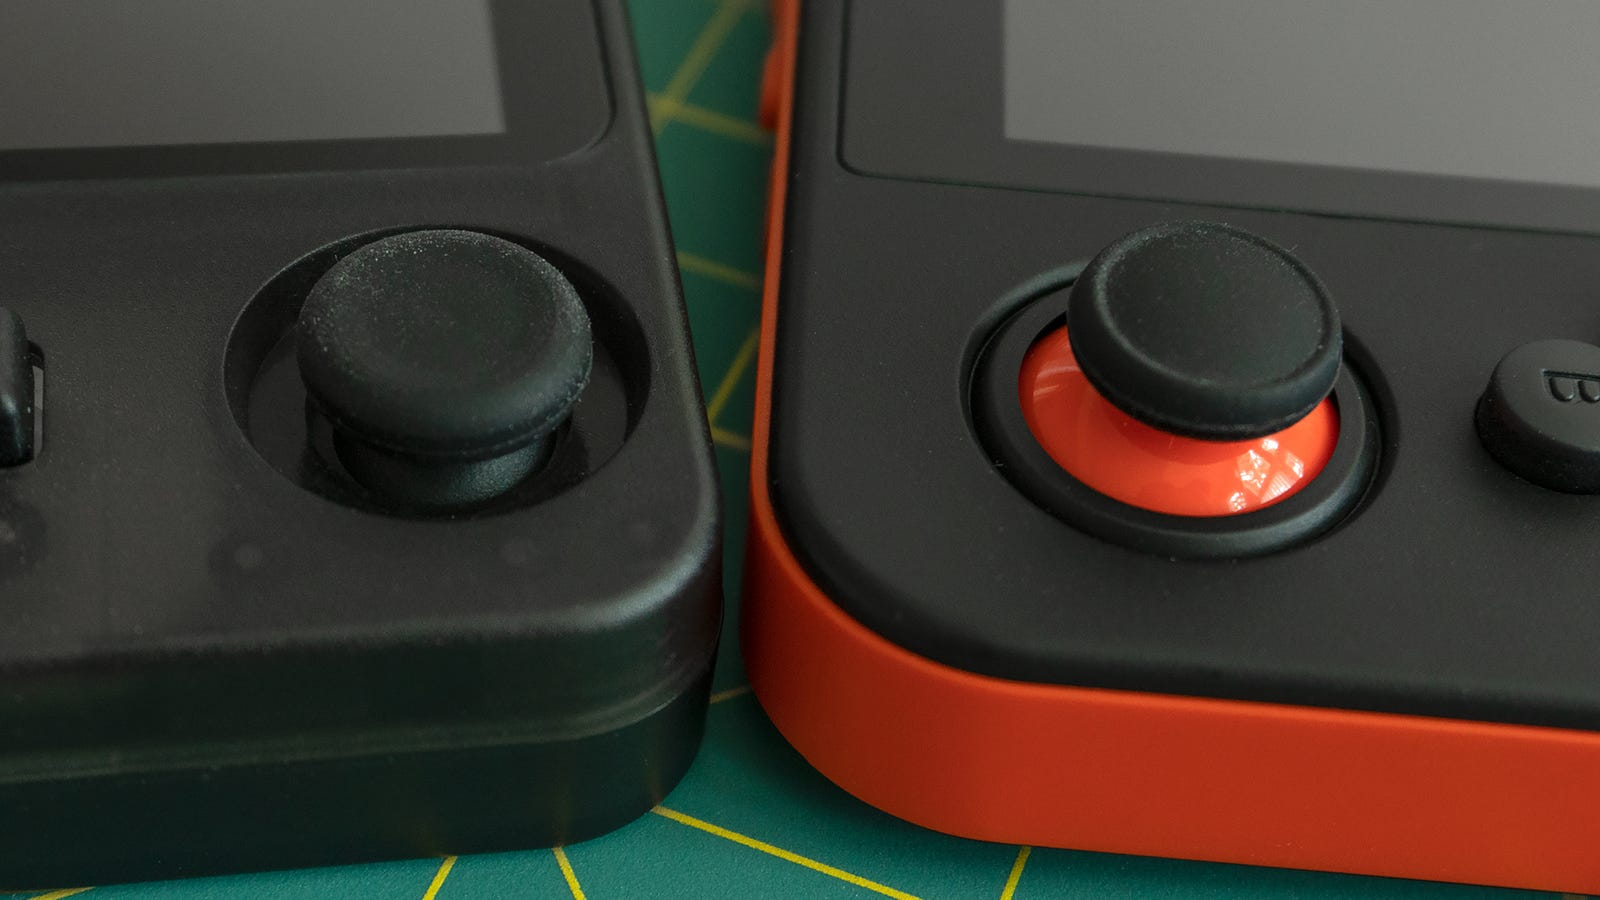 The recessed analog joystick on the RK2020 (left) makes the handheld easier to pocket, and it has less travel and is slightly looser than the joysticks on the RG350 (right), which I prefer. However, you only get one.